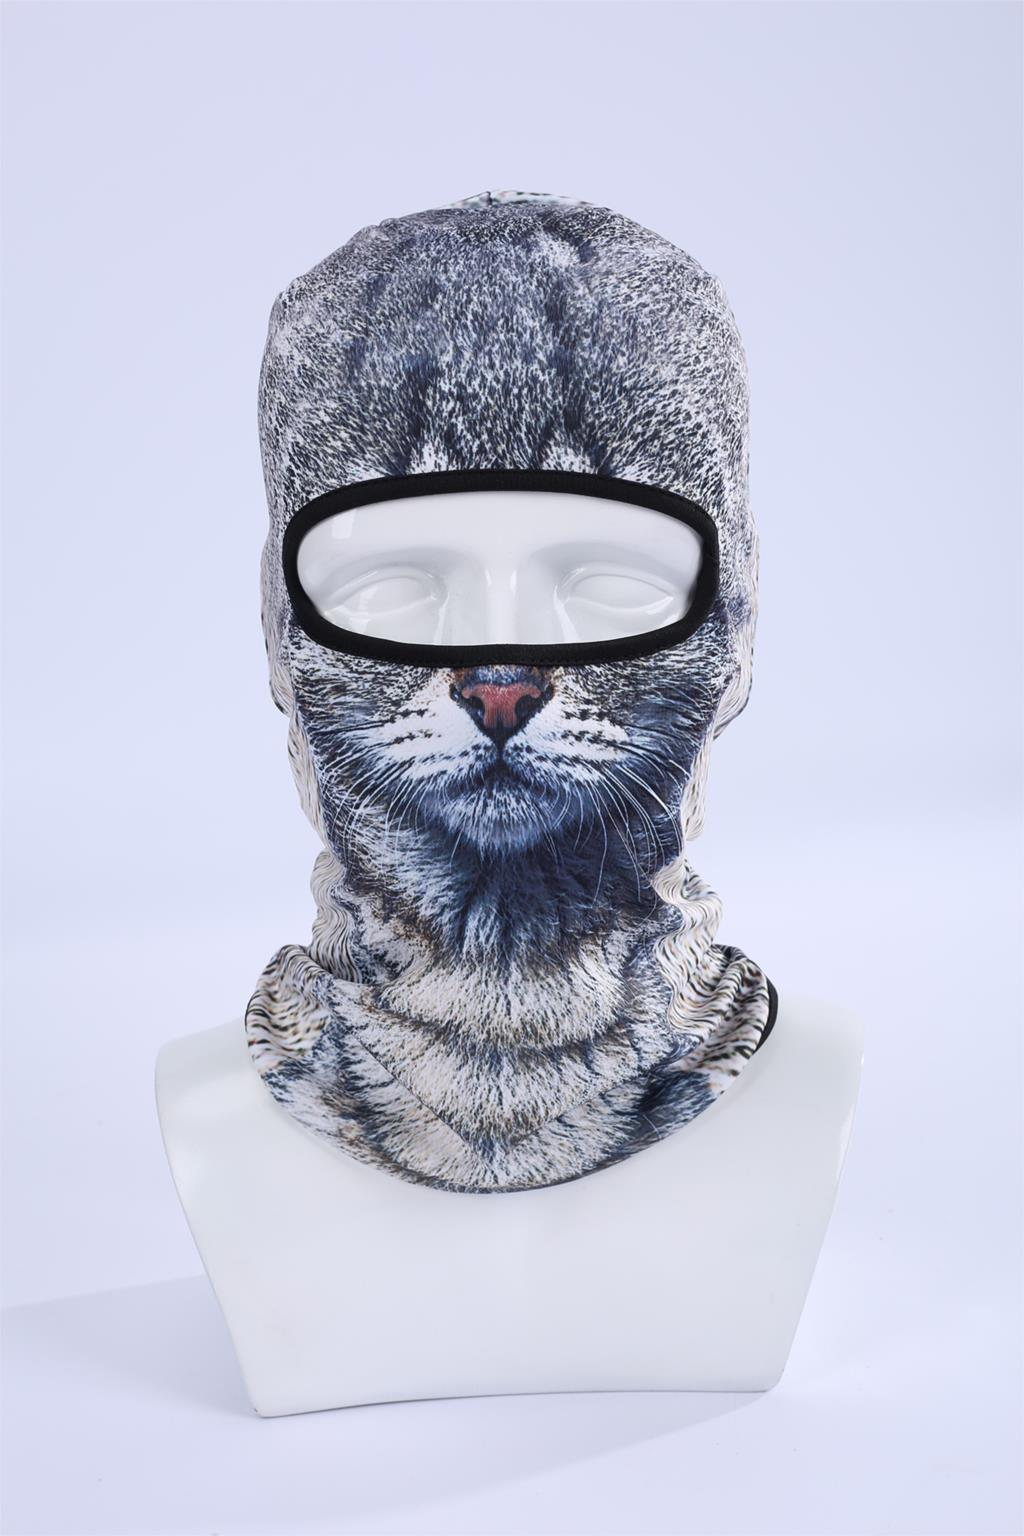 Hot Sale 2016 COOL ! New 3D Cat Animal Ski Hood Hat Balaclava Full Face Mask Outdoor Sports Bicycle Cycling Masks BBB09(China (Mainland))